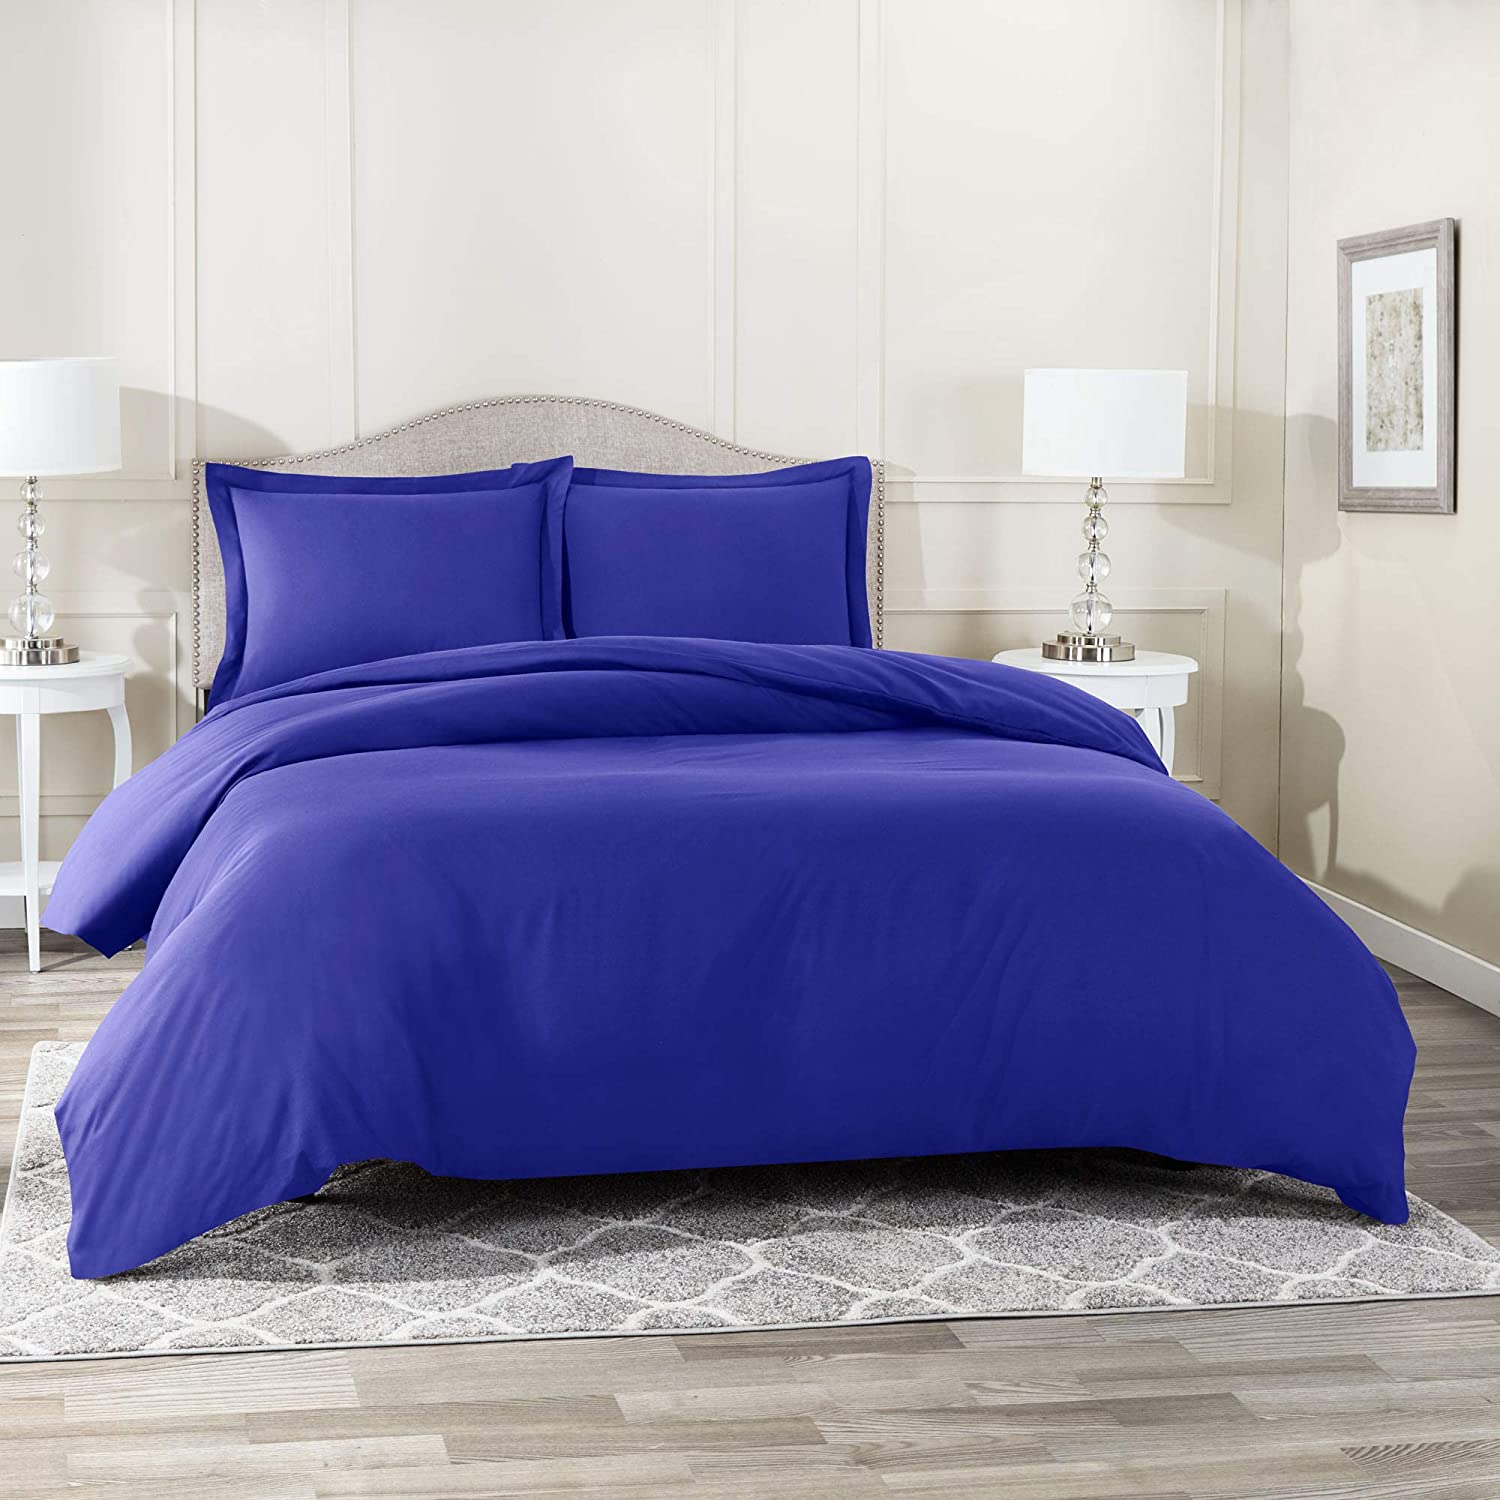 "Nestl Bedding Duvet Cover 3 Piece Set – Ultra Soft Double Brushed Microfiber Hotel Collection – Comforter Cover with Button Closure and 2 Pillow Shams, Royal Blue - King 90""x104"""